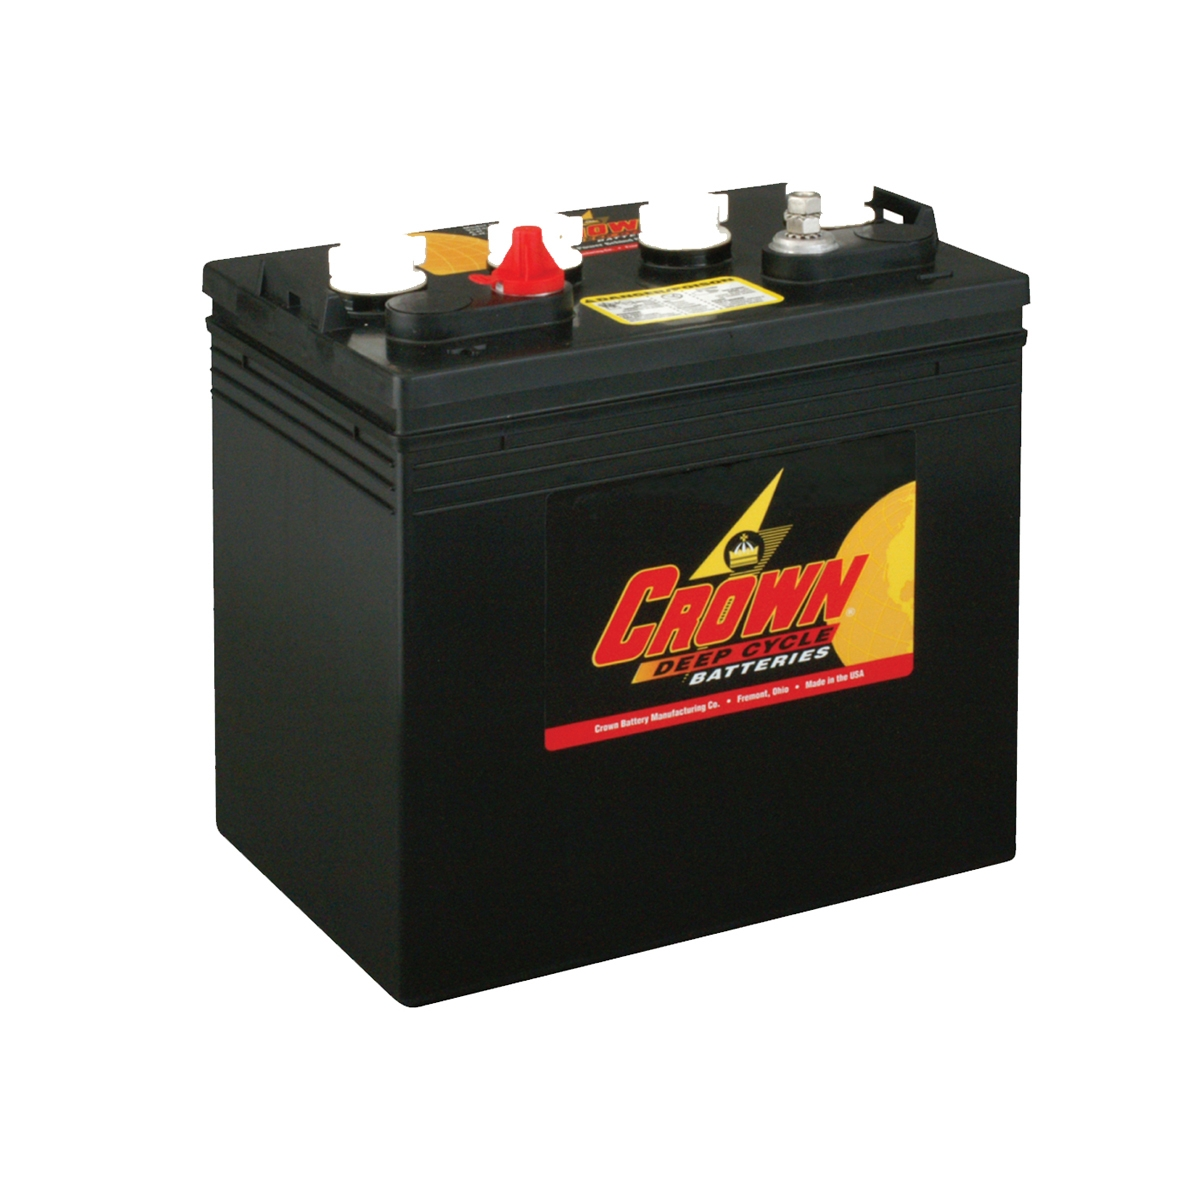 Numax LV26MF Sealed Leisure Battery P7674 in addition DA74 Duracell Advanced Car Battery 096 DA 74 P9534 moreover Sonnenschein A51285 A  work Power Battery NGA5120085HS0CA P7918 likewise Cr 165 Crown Battery Cr165 P8878 in addition 2013 Jeep Wrangler Fuse Box. on odyssey radio code